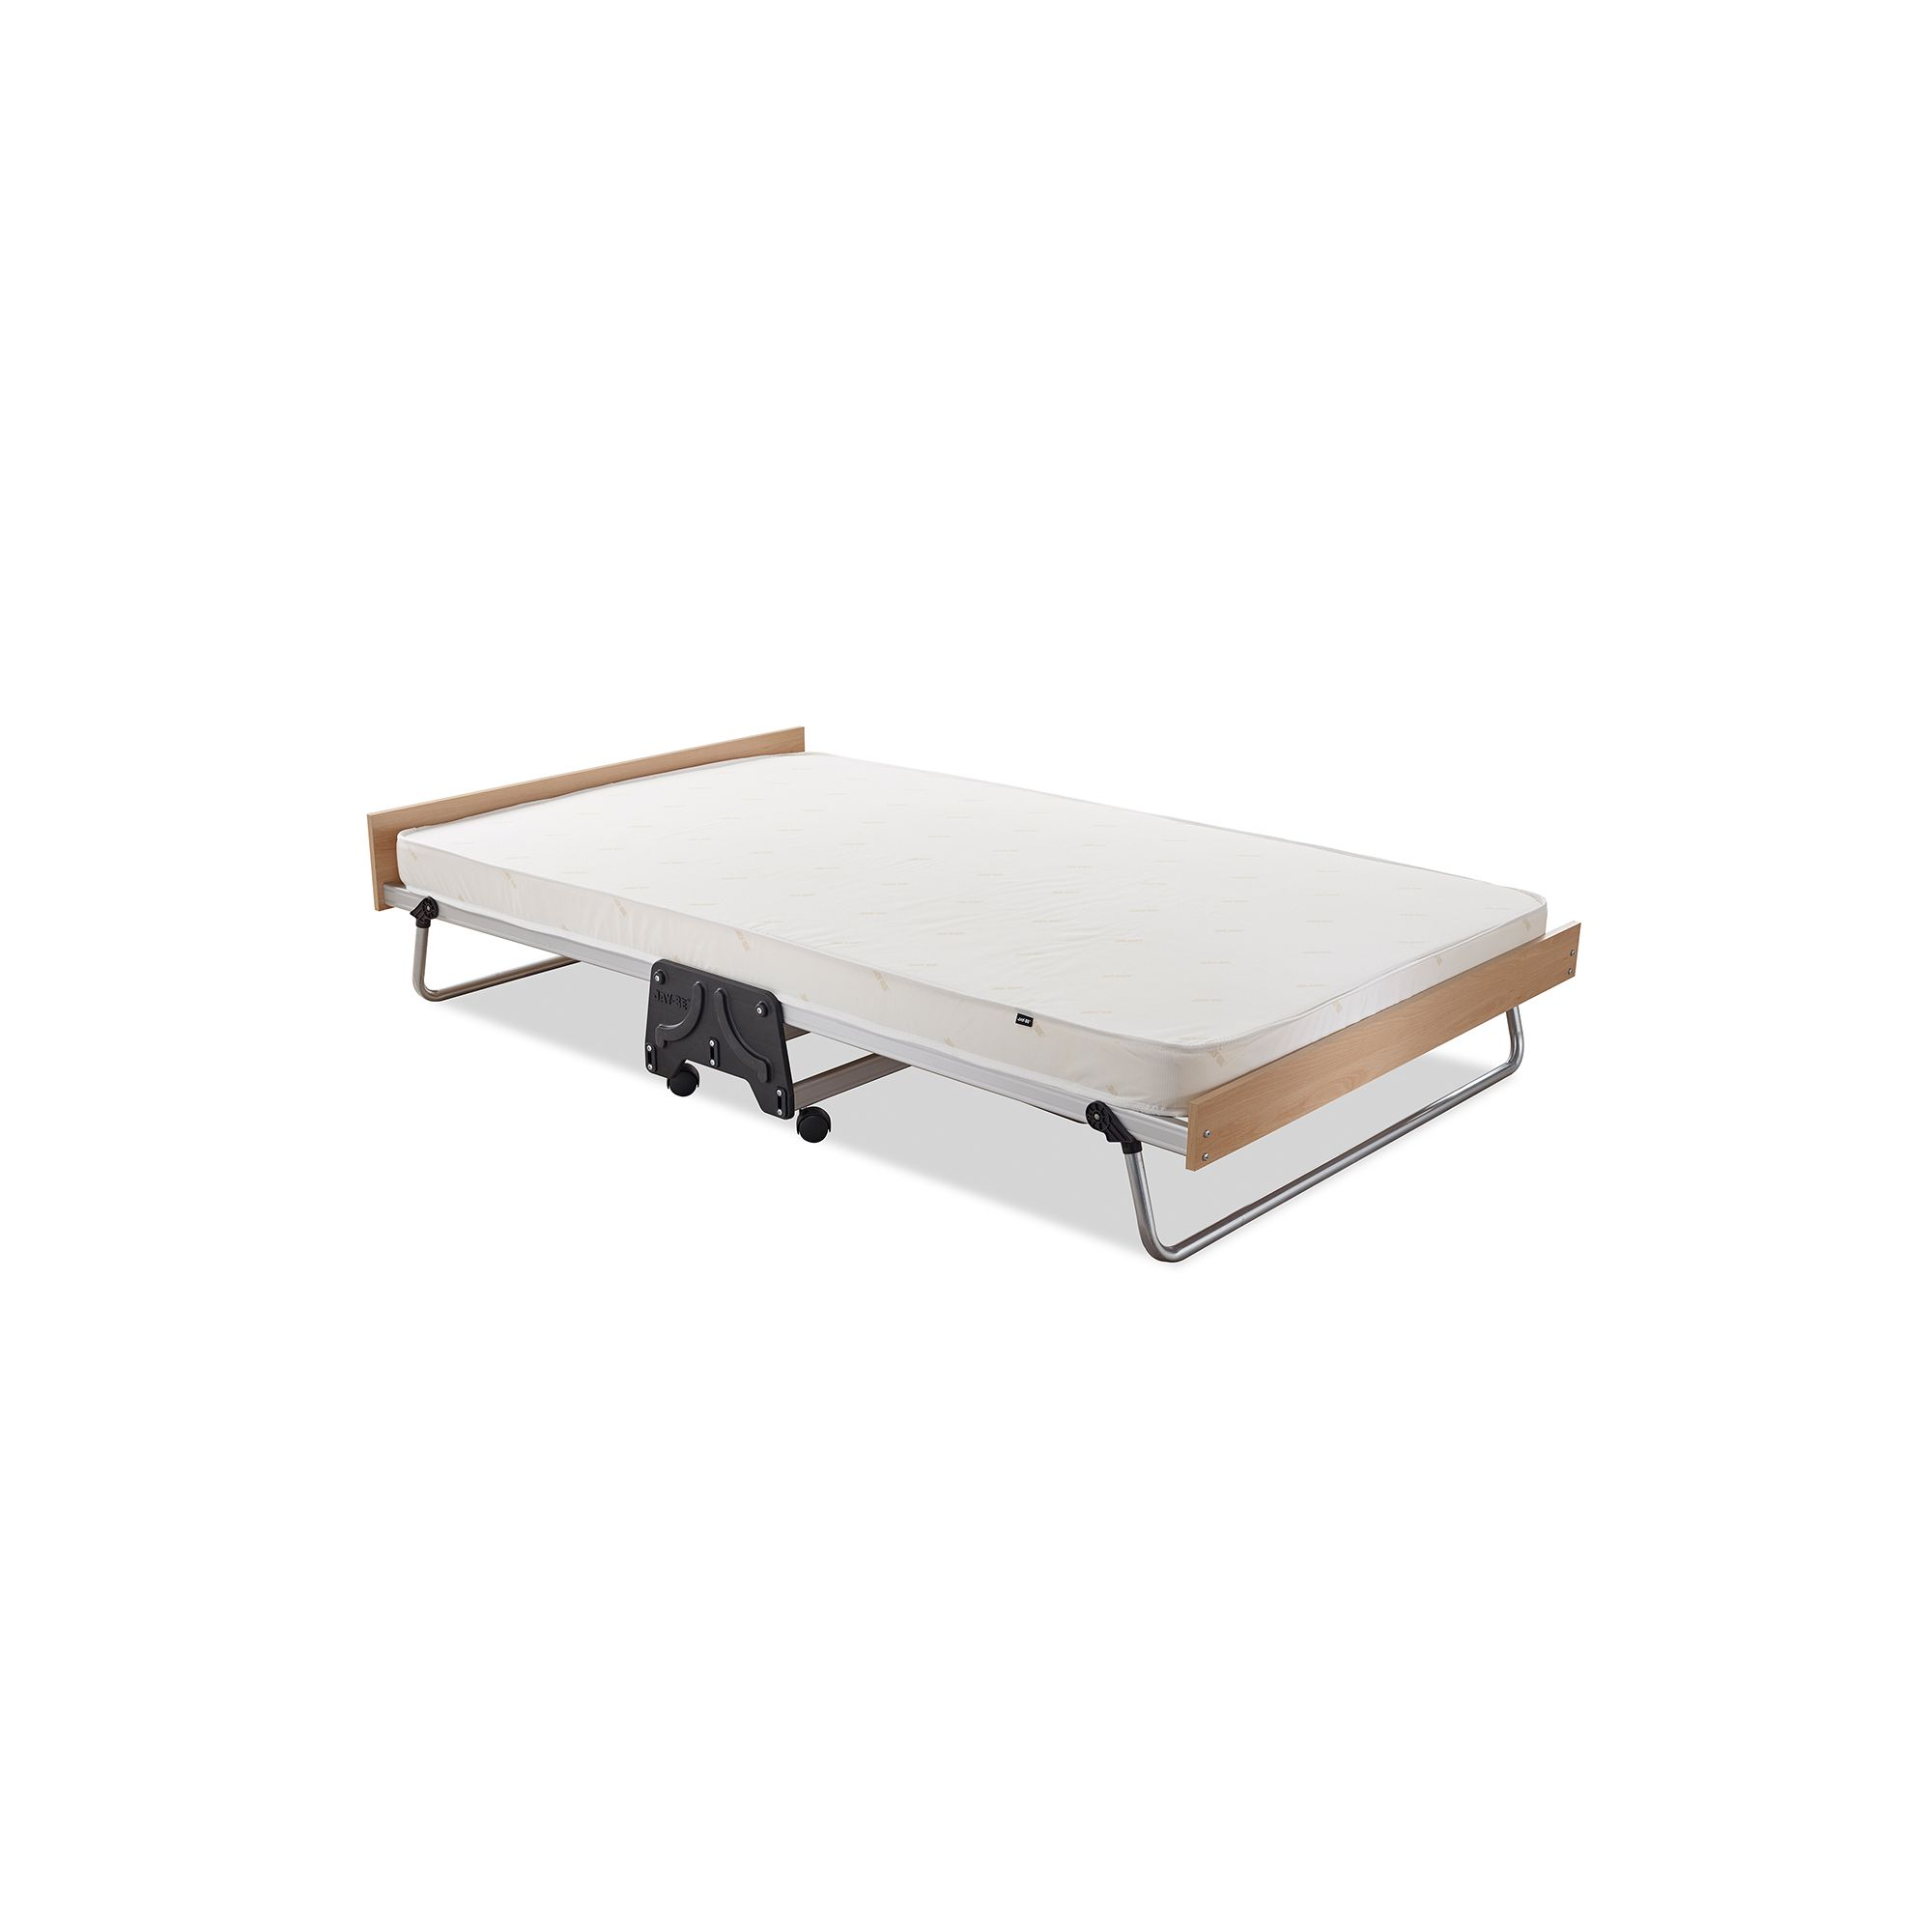 Jay-Be Ultimate Double High Performance Folding Bed for Permanent Sleeper at Tesco Direct